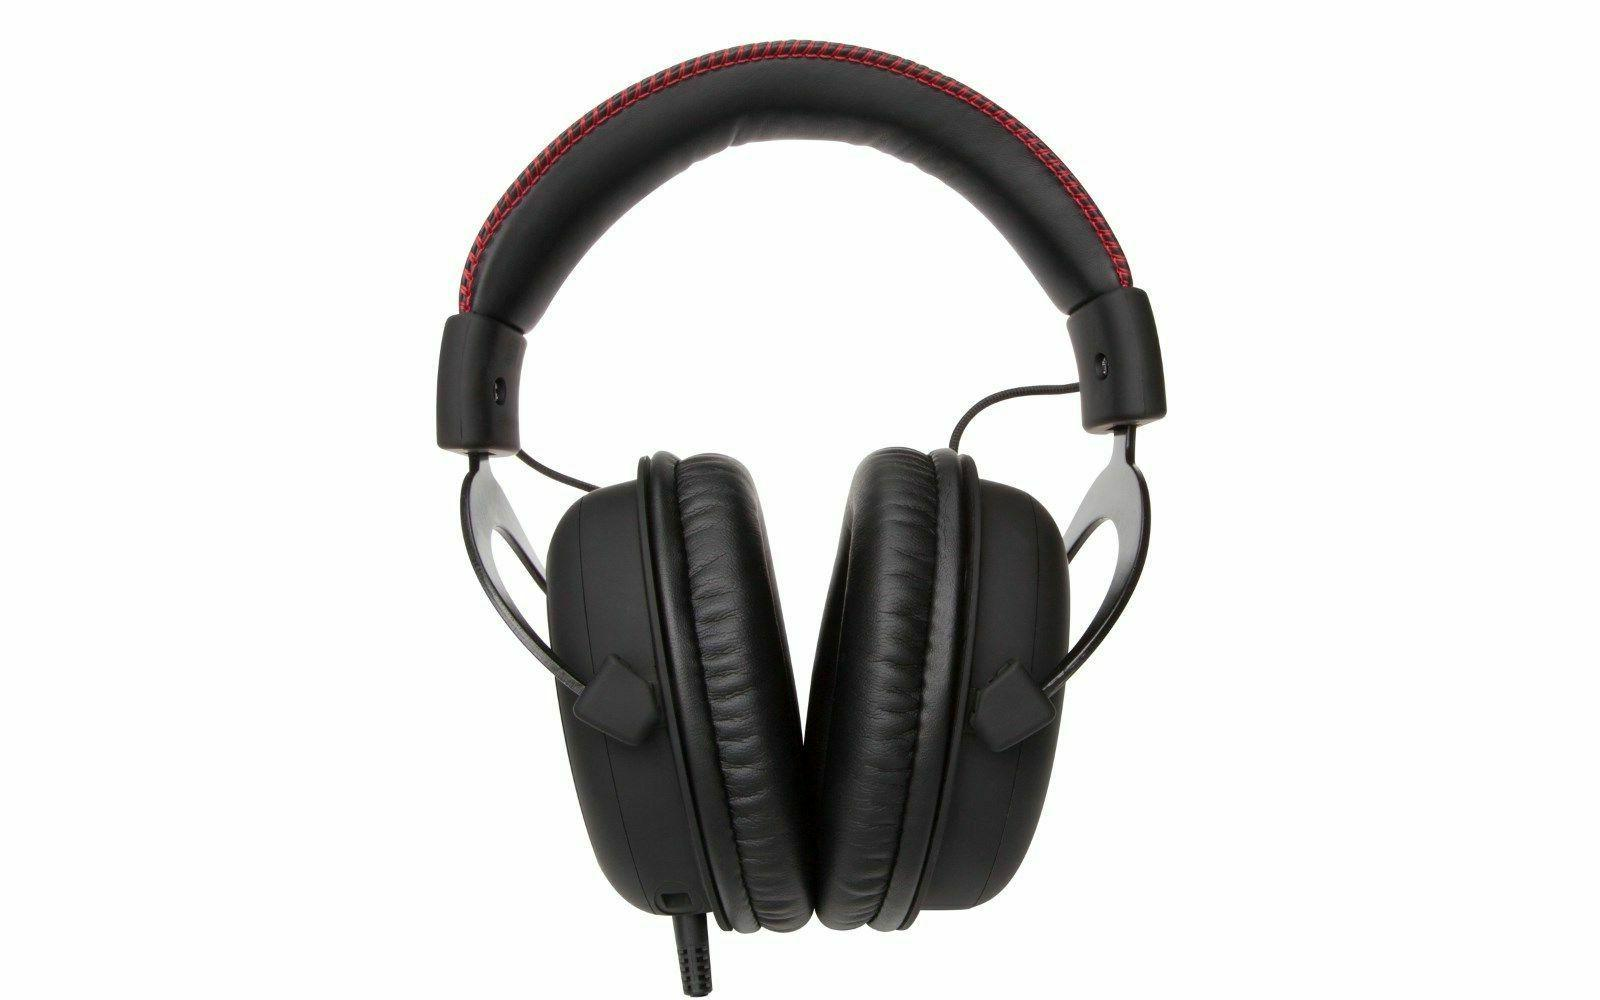 HyperX Cloud Gaming Headset for PS4, Wii U